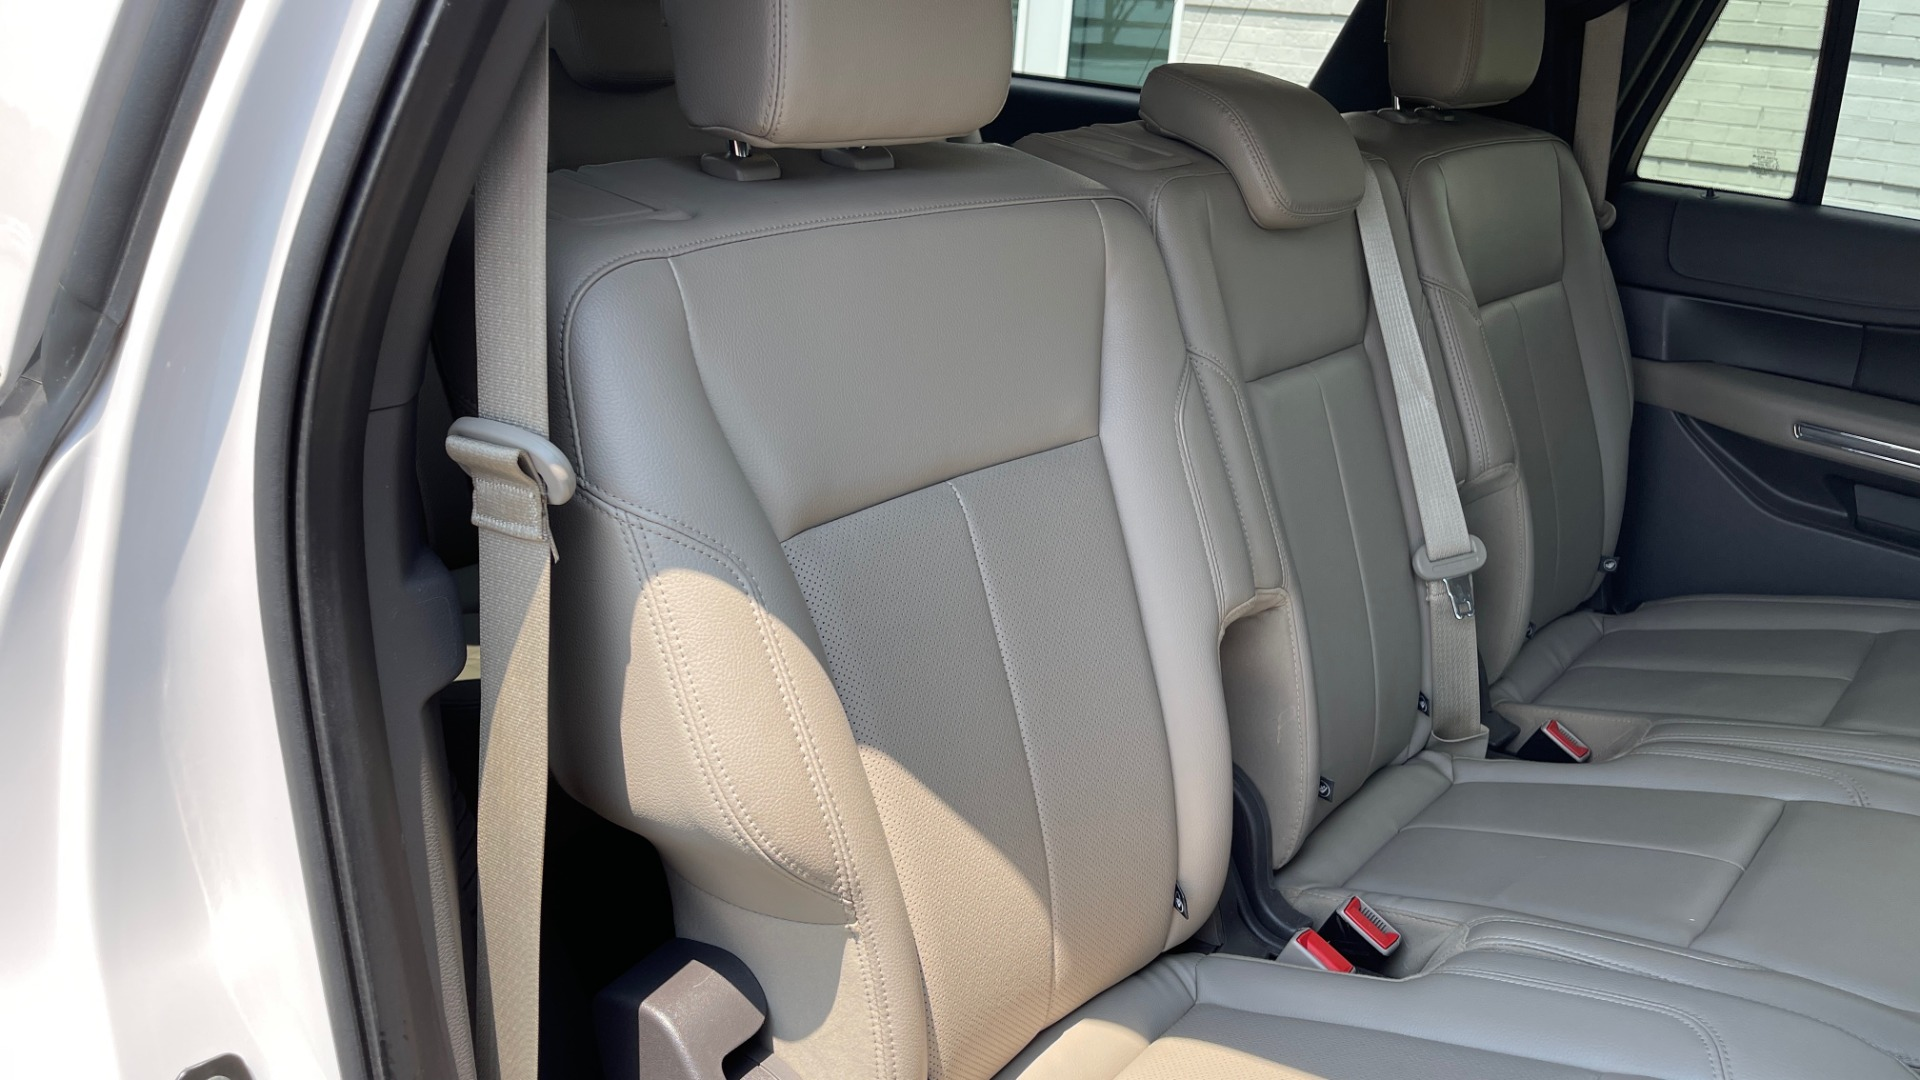 Used 2019 Ford EXPEDITION MAX XLT / 3.5L ECOBOOST / NAV / PANO-ROOF / 3-ROWS / REARVIEW for sale Sold at Formula Imports in Charlotte NC 28227 67